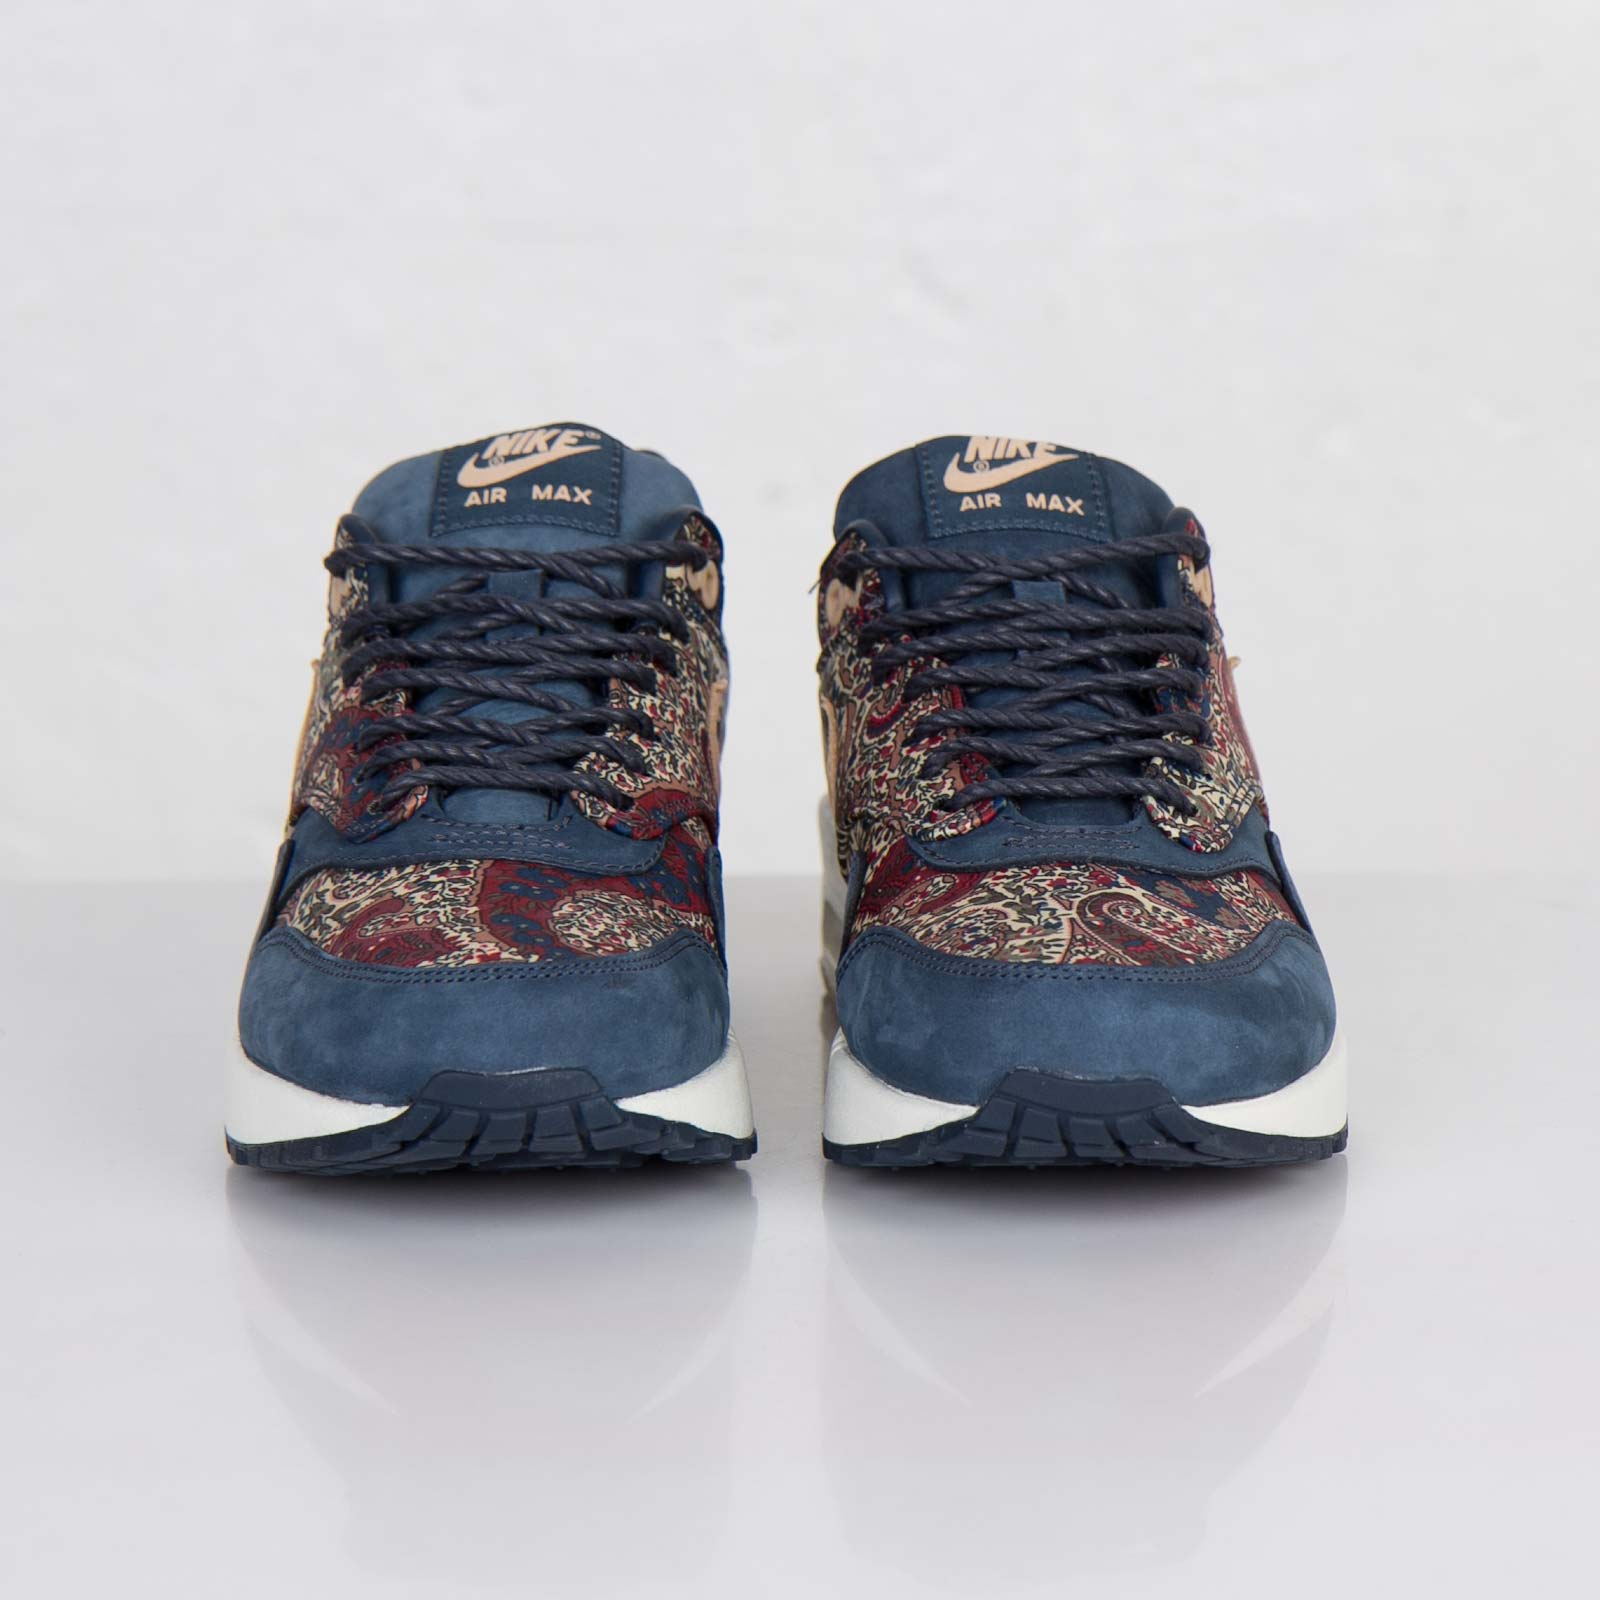 new style 65ef9 7c287 Nike Wmns Air Max 1 Liberty QS - 540855-402 - Sneakersnstuff   sneakers    streetwear online since 1999